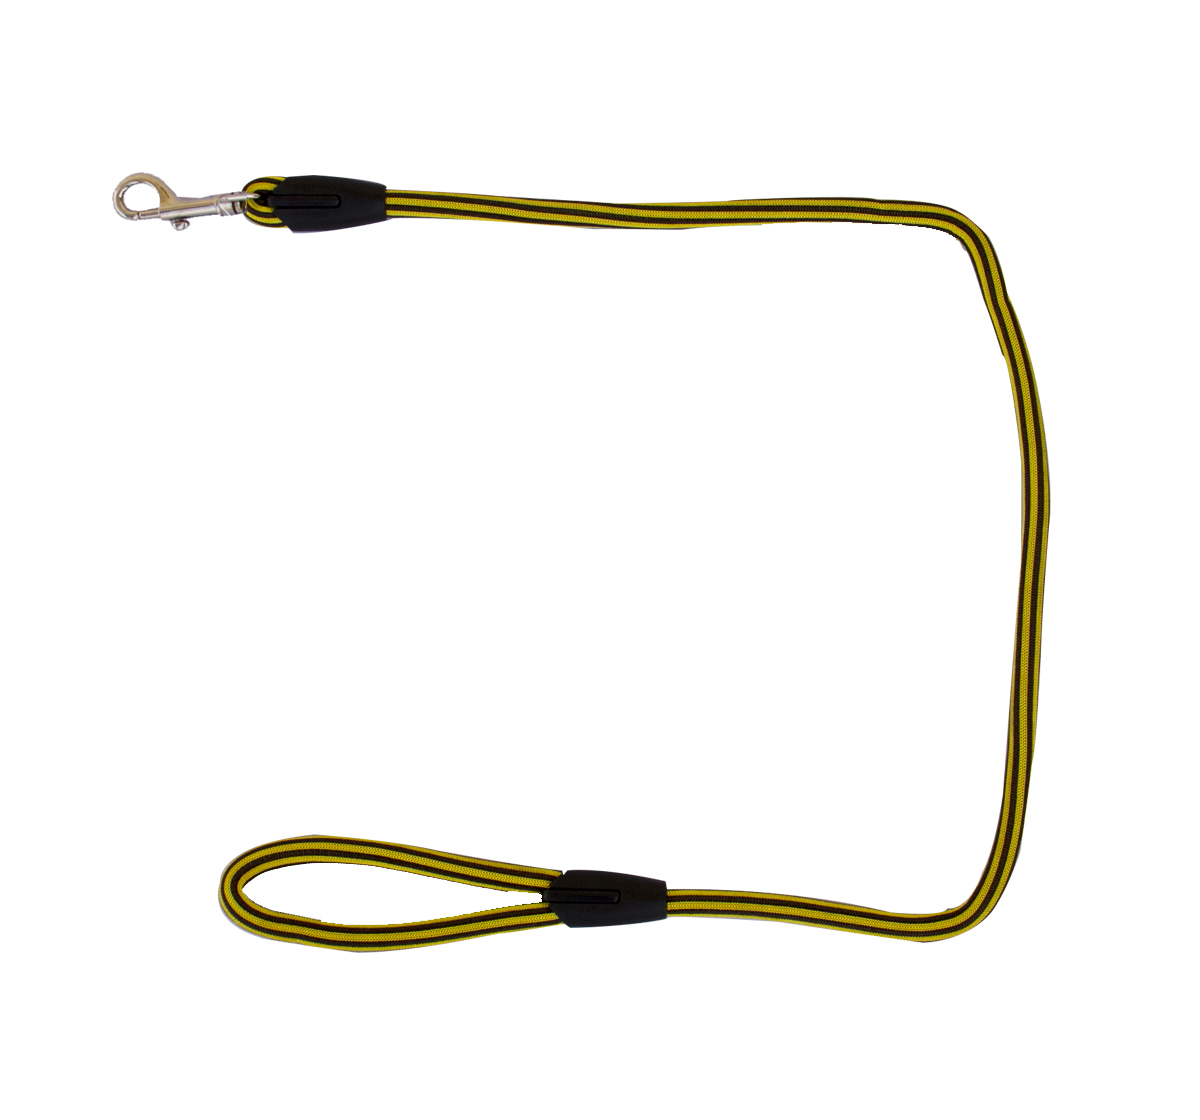 DogSpot Striped Nylon Rope Leash - Lemon Green